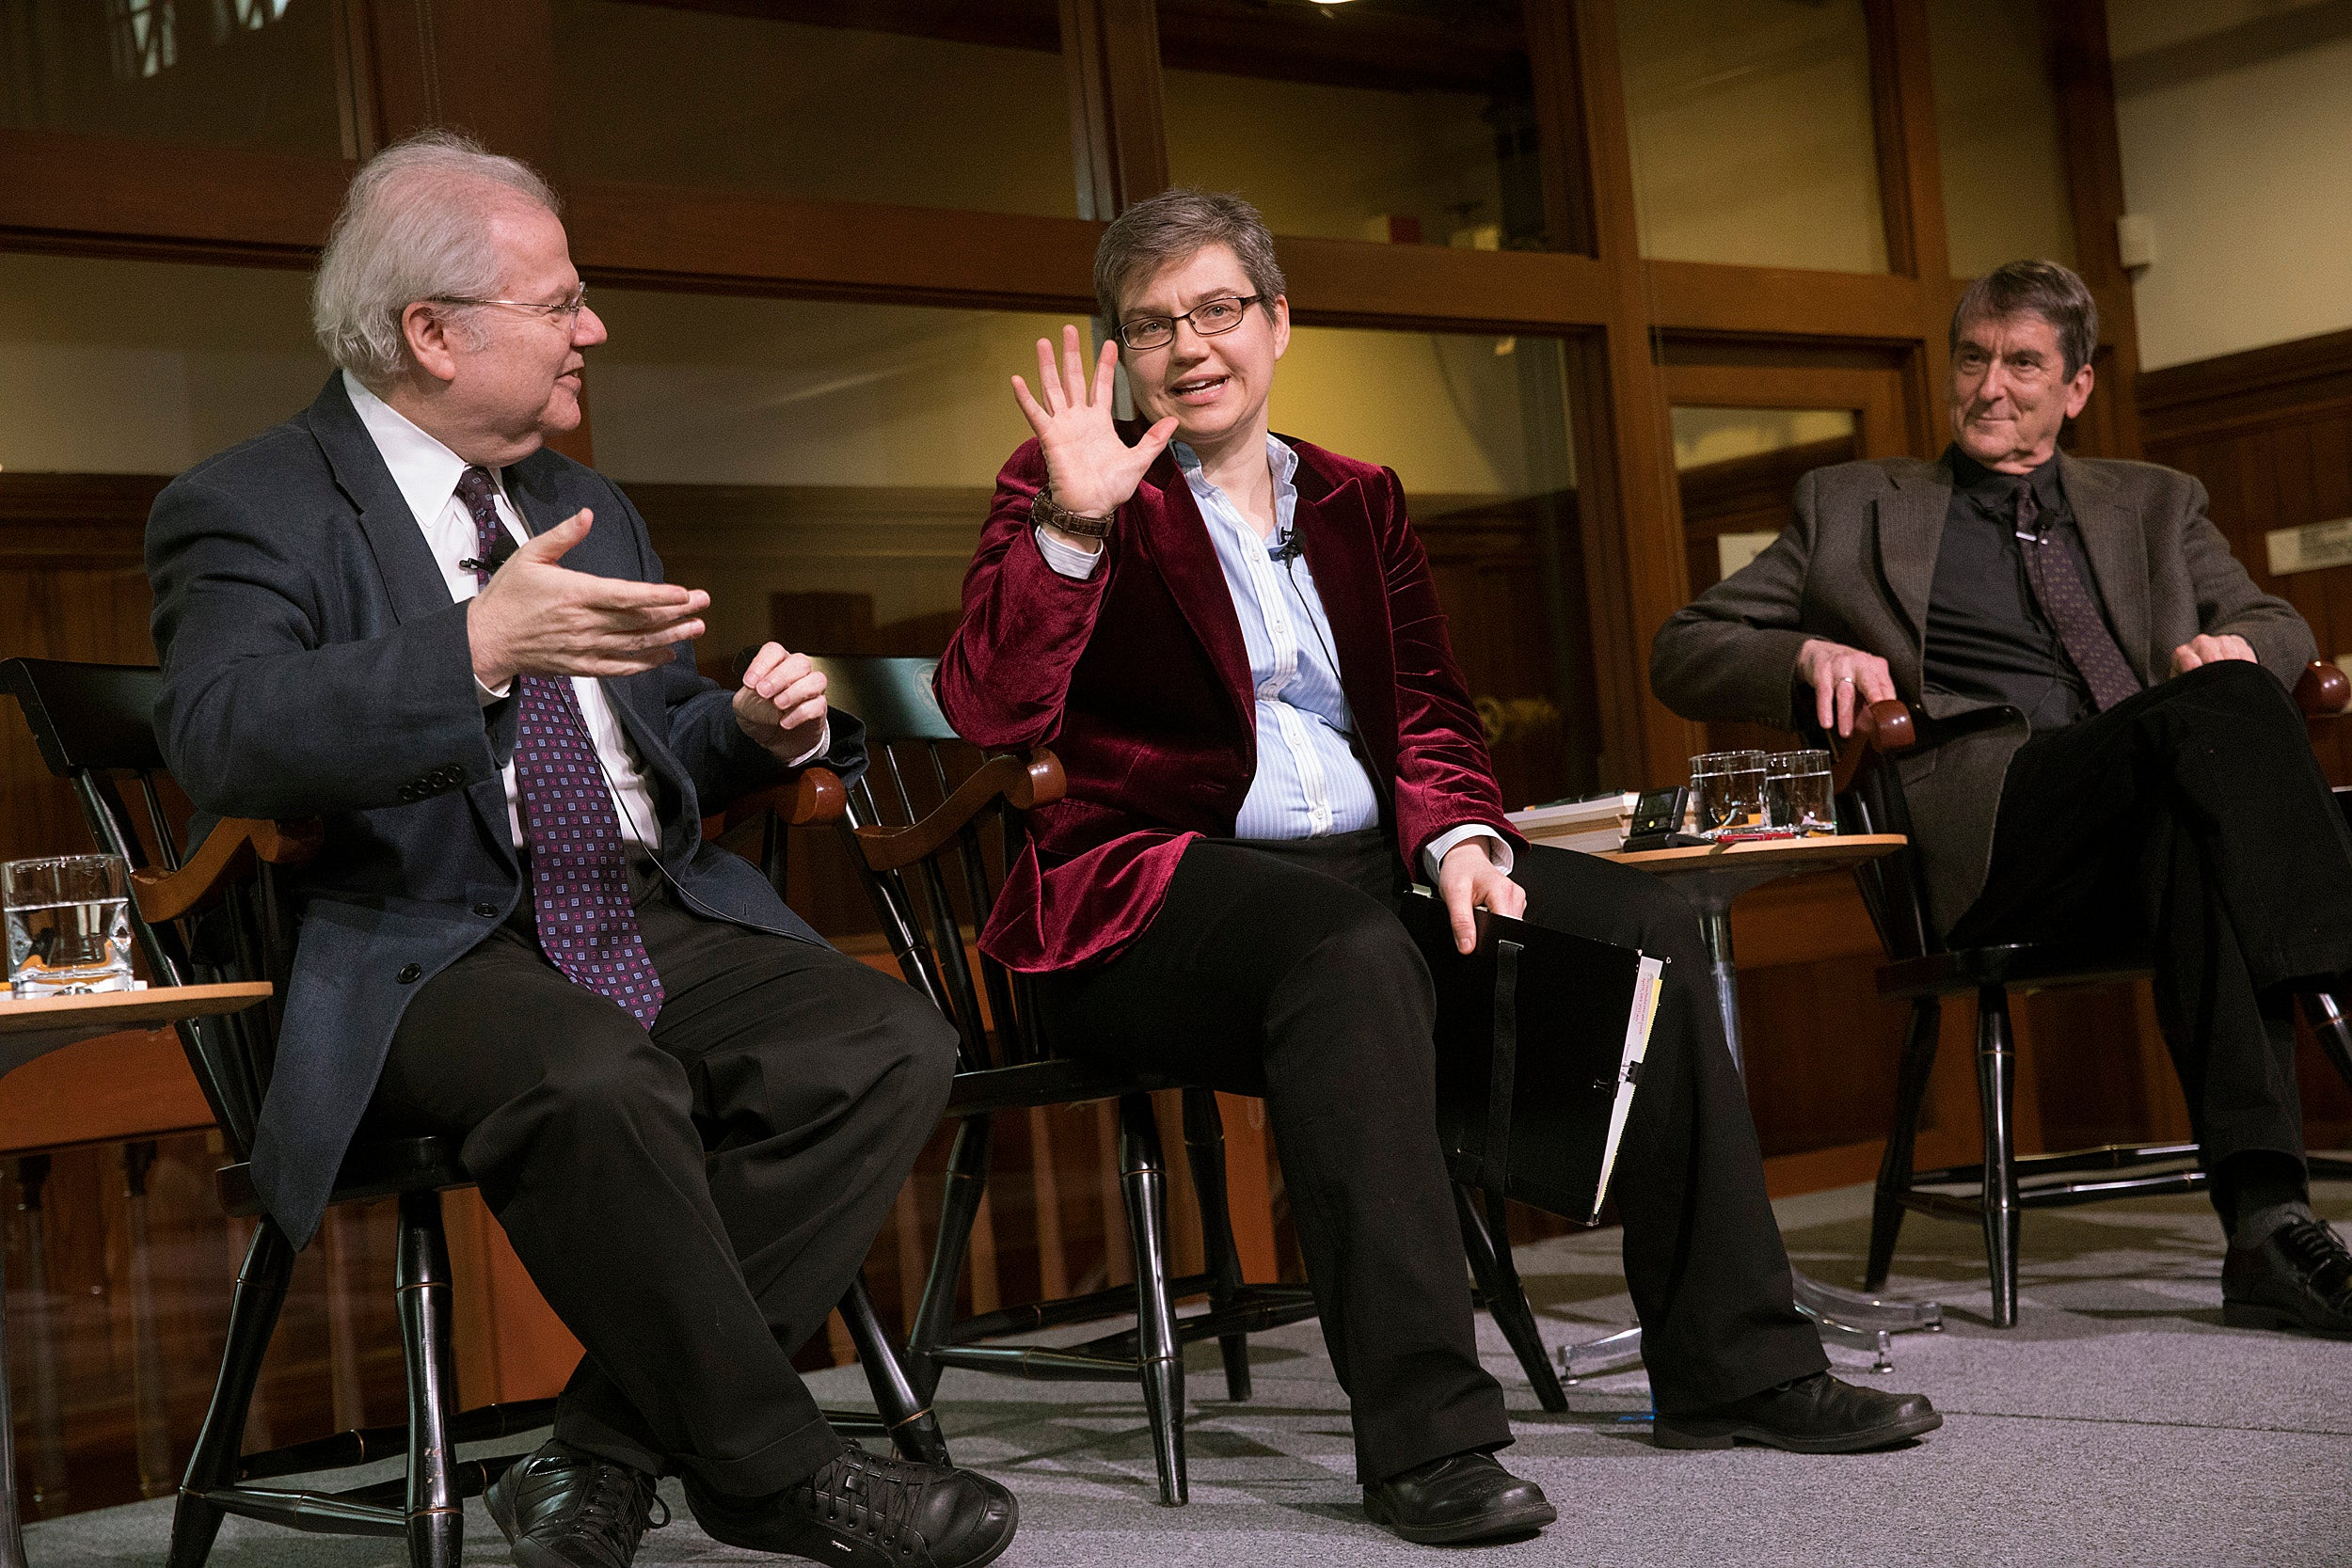 pianist Emanuel Ax visited Harvard to discuss the influence